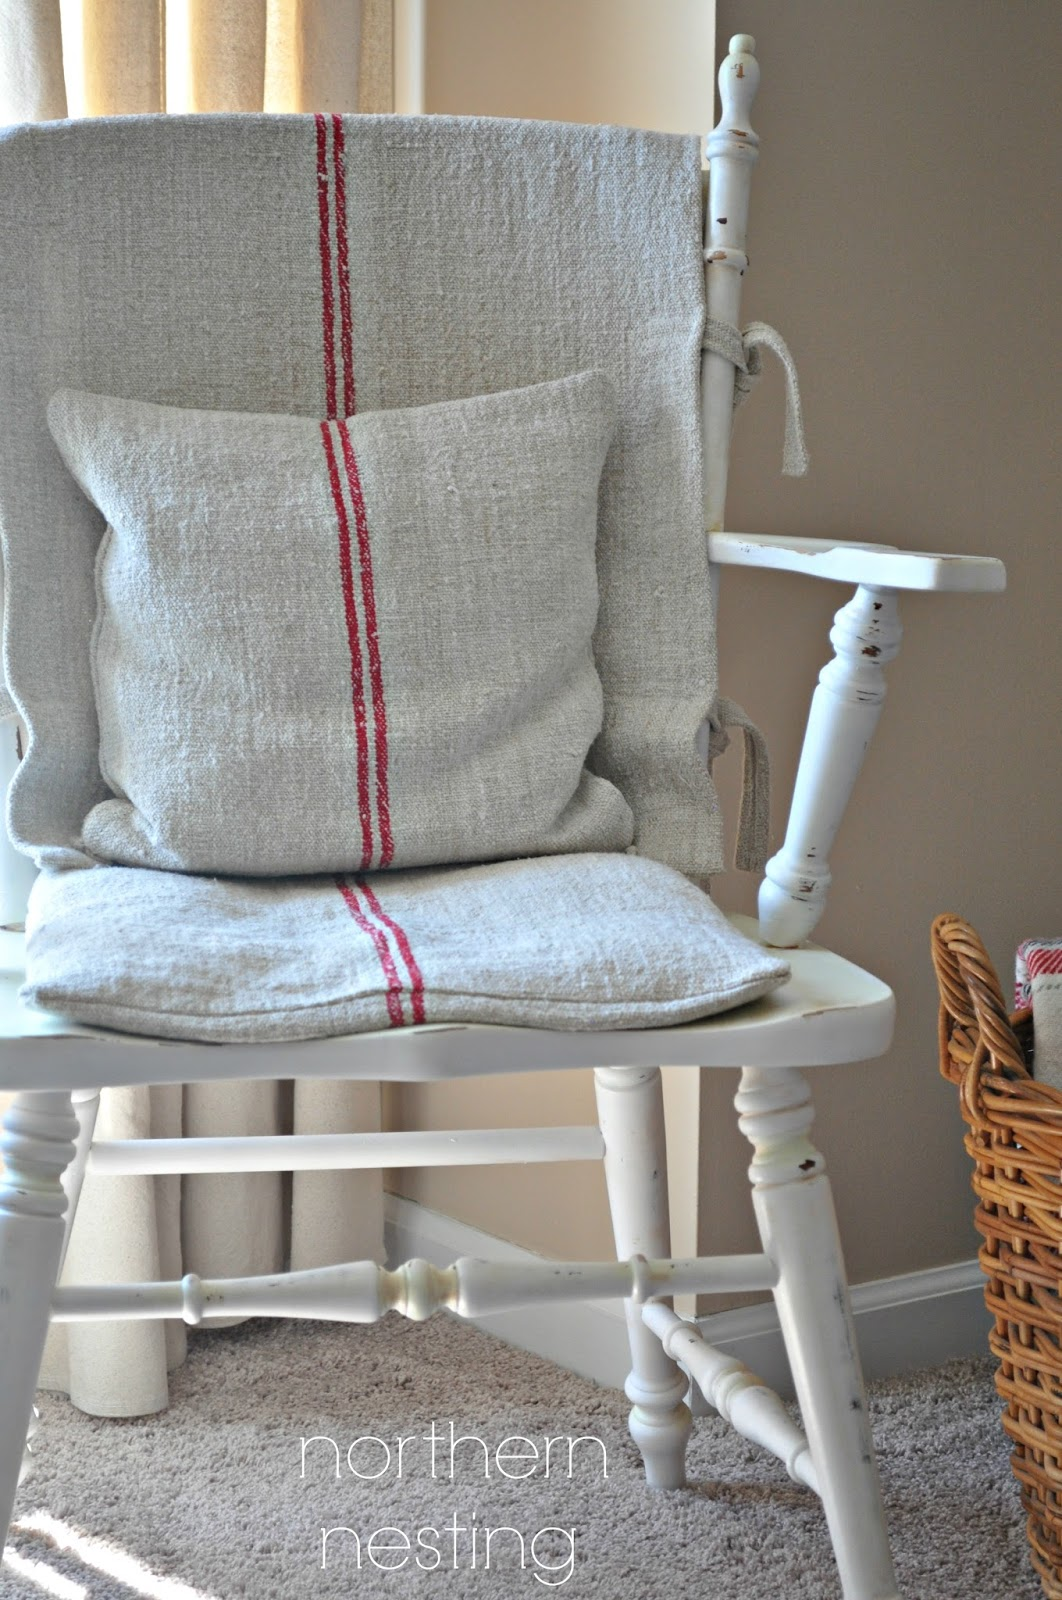 Northern Nesting Grain Sack Cushions by Ann